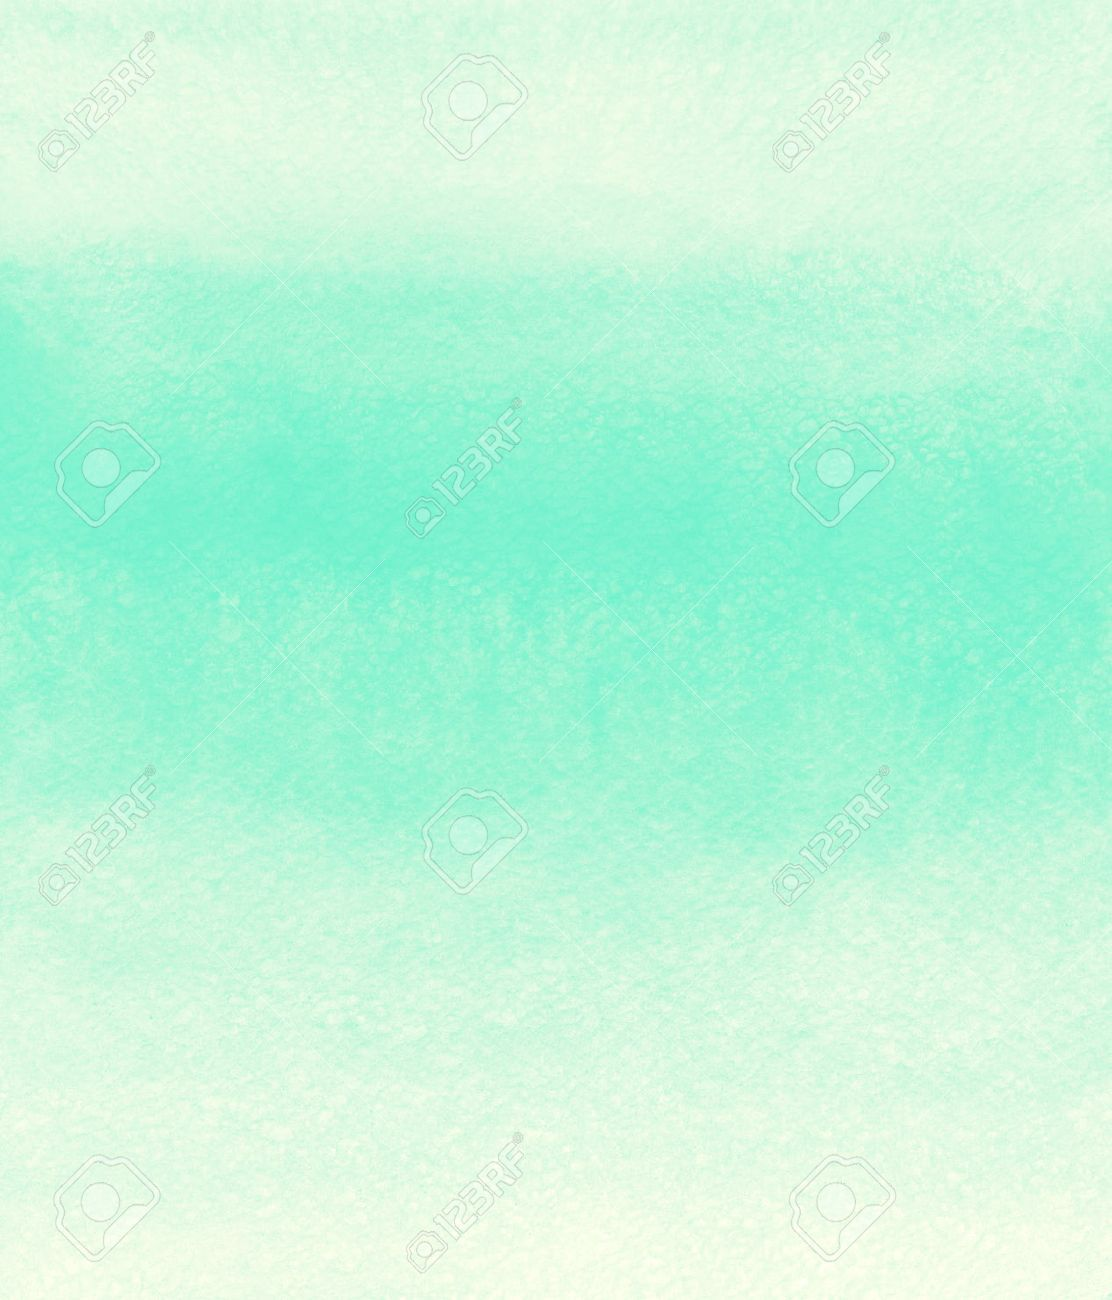 Mint Green Striped Watercolor Background Painted Gradient